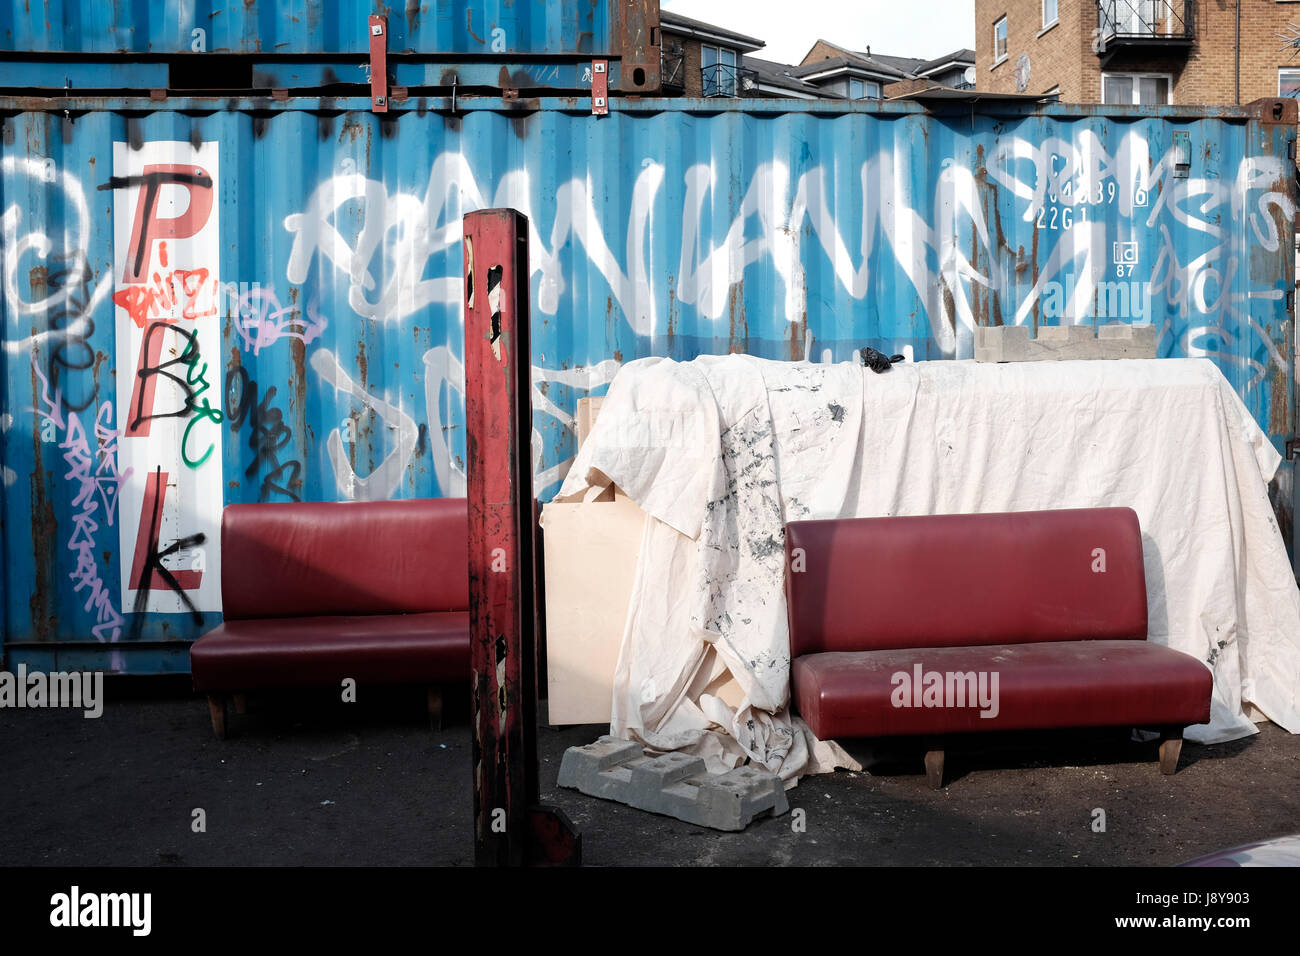 Grafftiti sprayed ship Containers with discarded furniture, on  Westbourne Park road, London, England, UK. - Stock Image